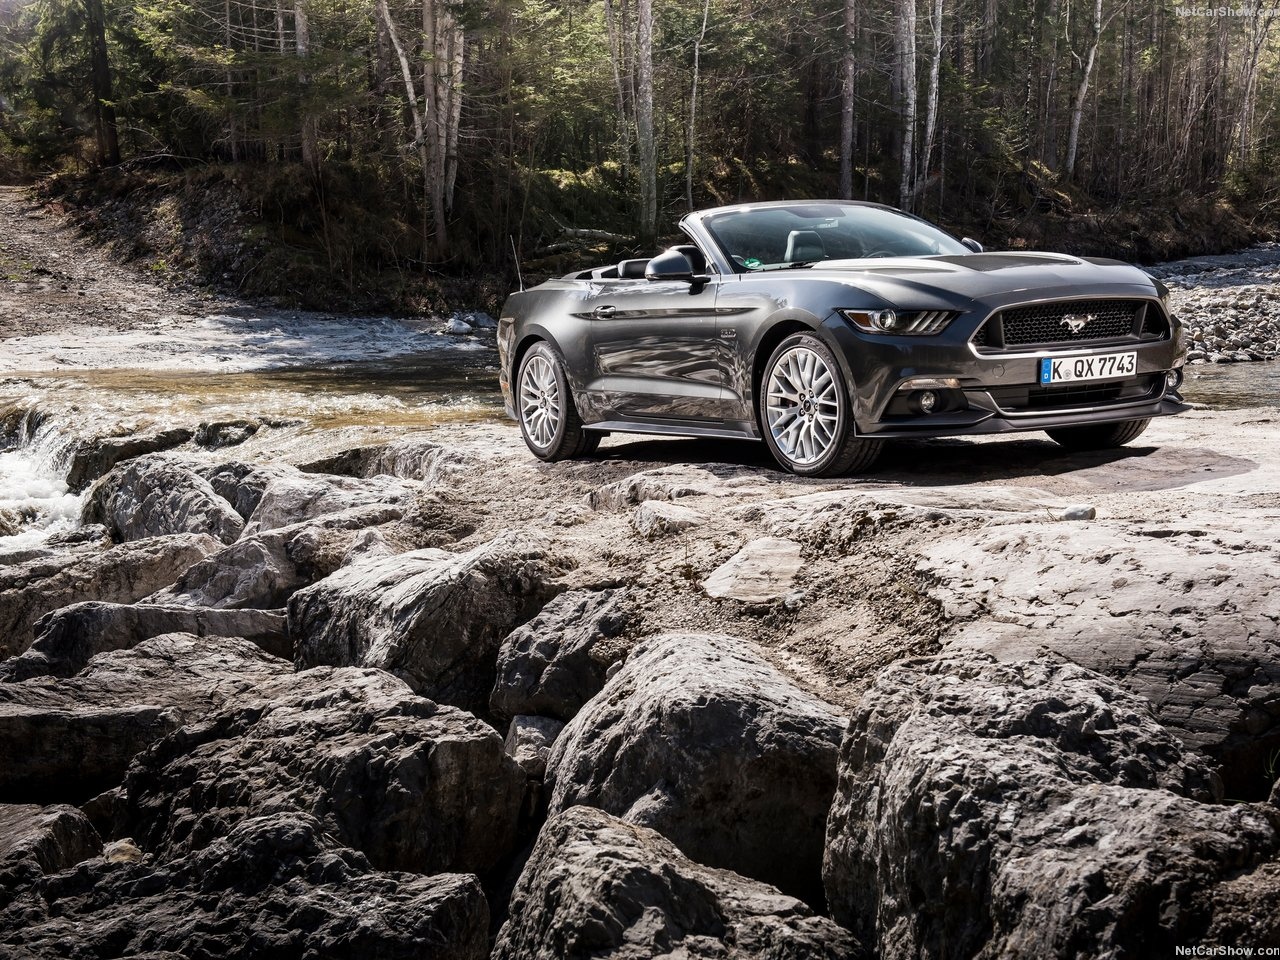 Ford Mustang Convertible EU-Version photo 142112